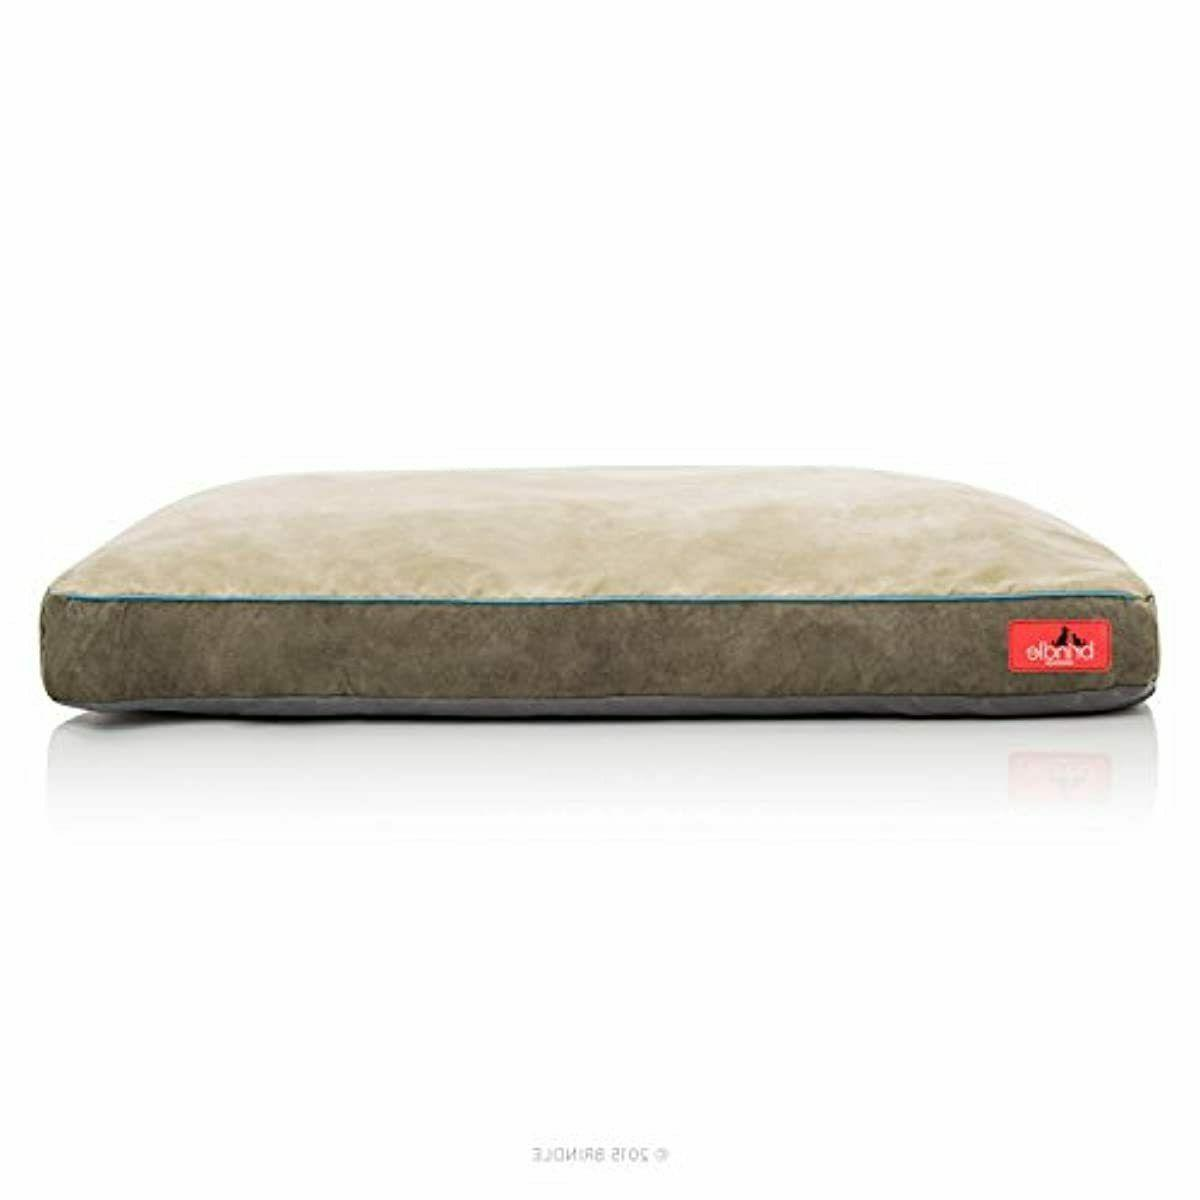 Soft Foam Bed Khaki with Cover